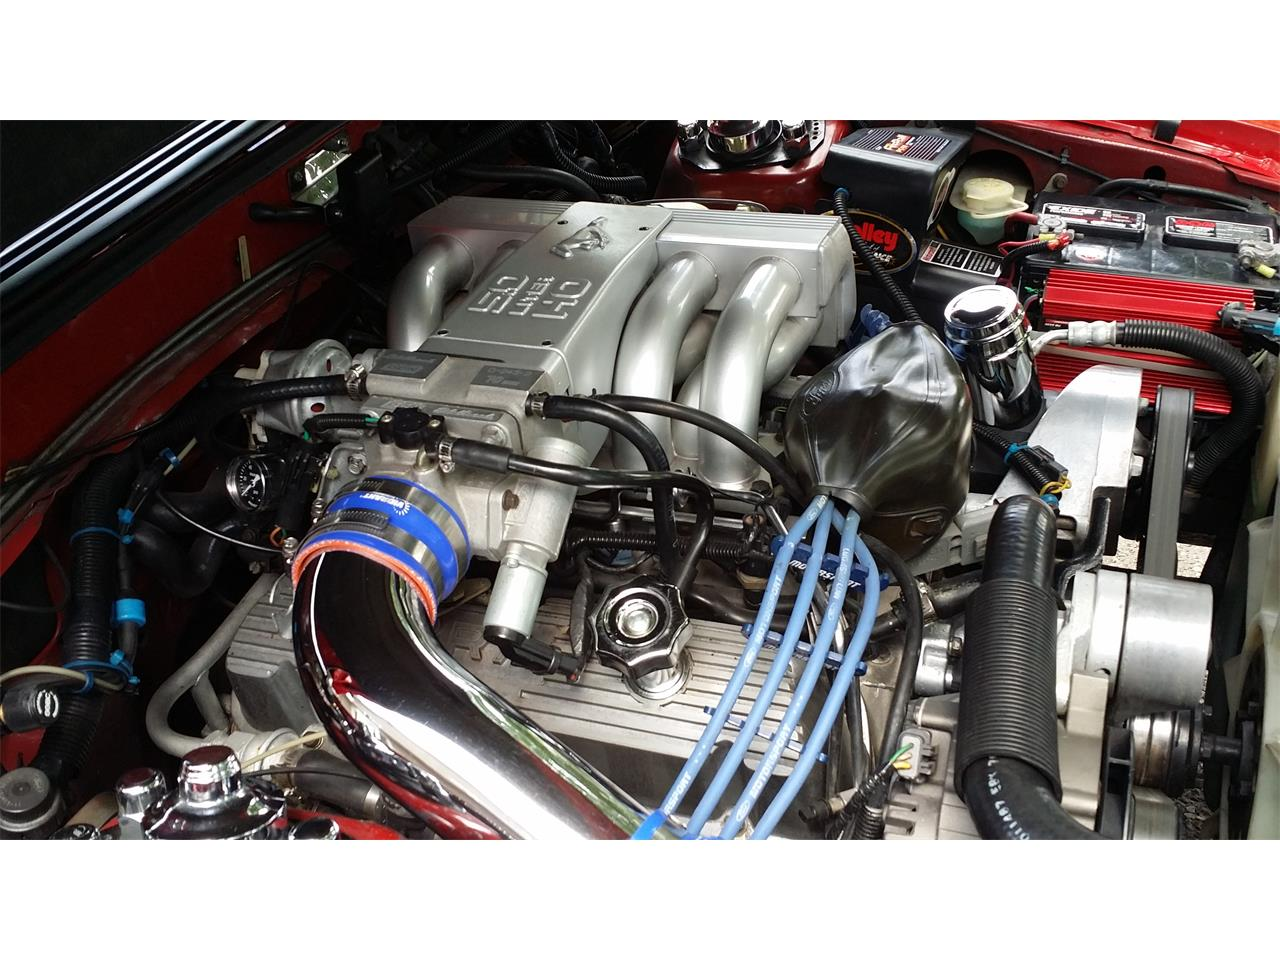 Large Picture of '87 Ford Mustang Cobra - $15,000.00 Offered by a Private Seller - PSFC